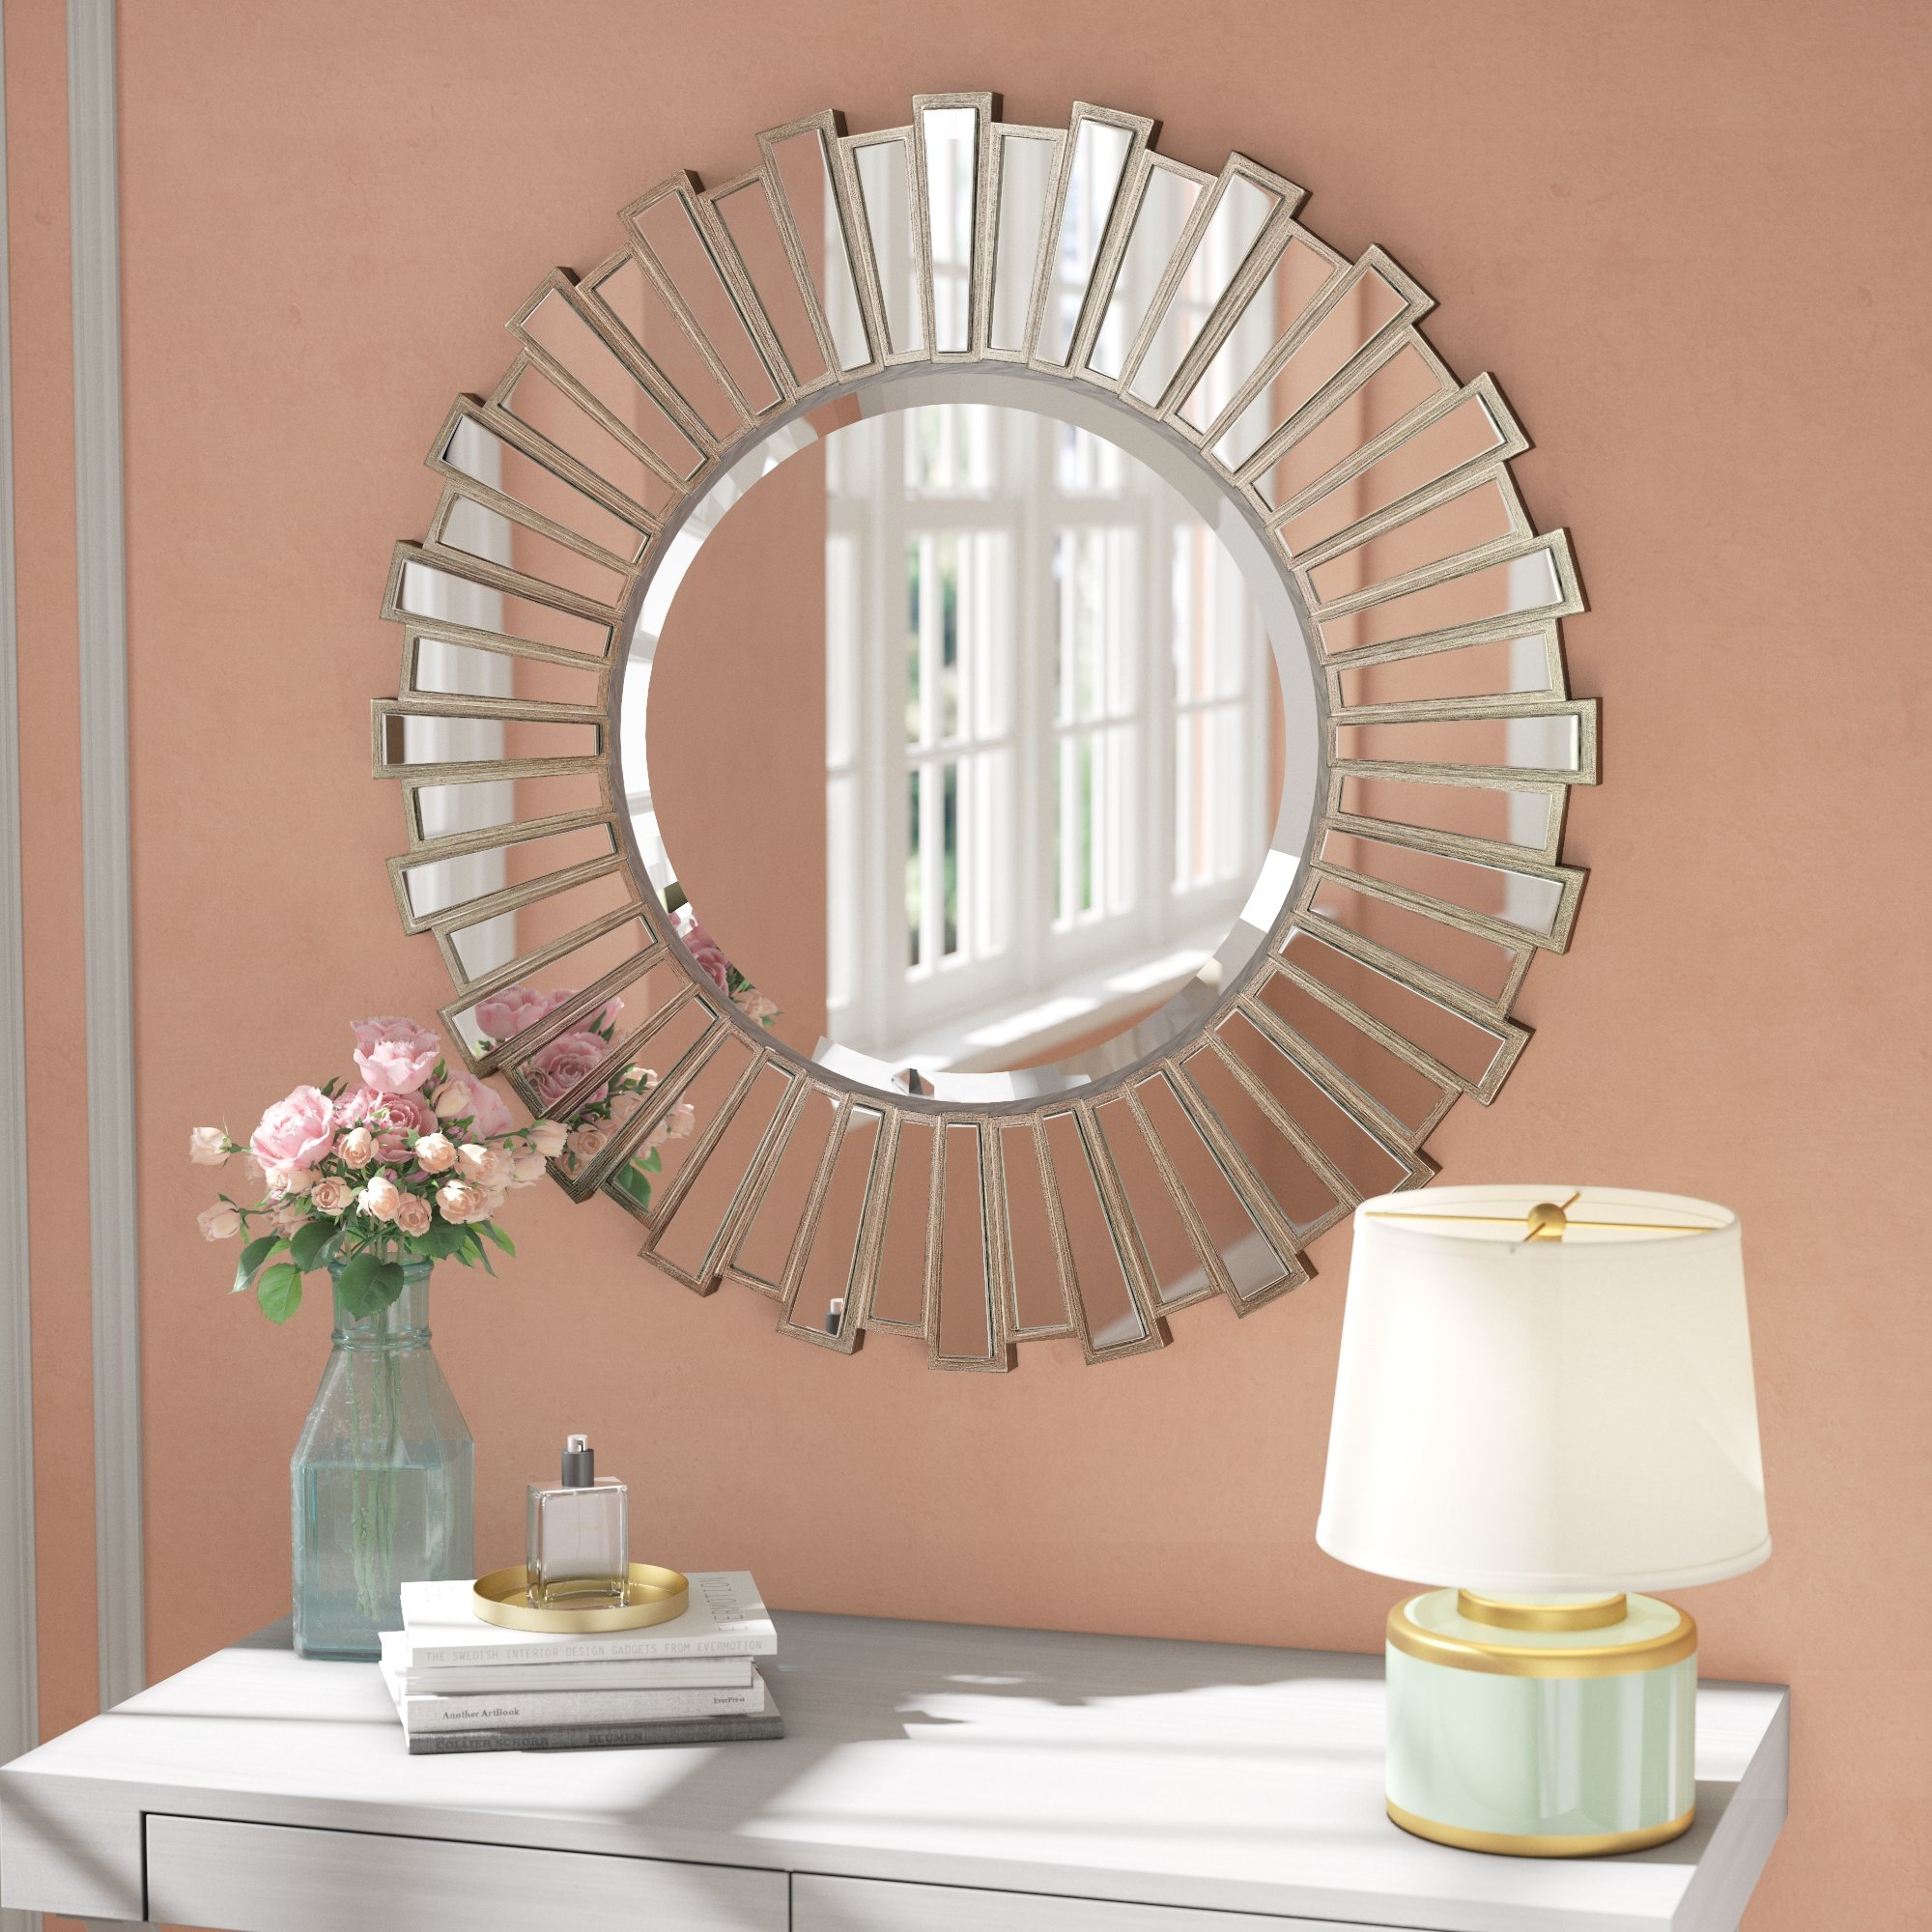 Bertrand Sunburst Resin Accent Wall Mirror Intended For Accent Wall Mirrors (View 9 of 20)